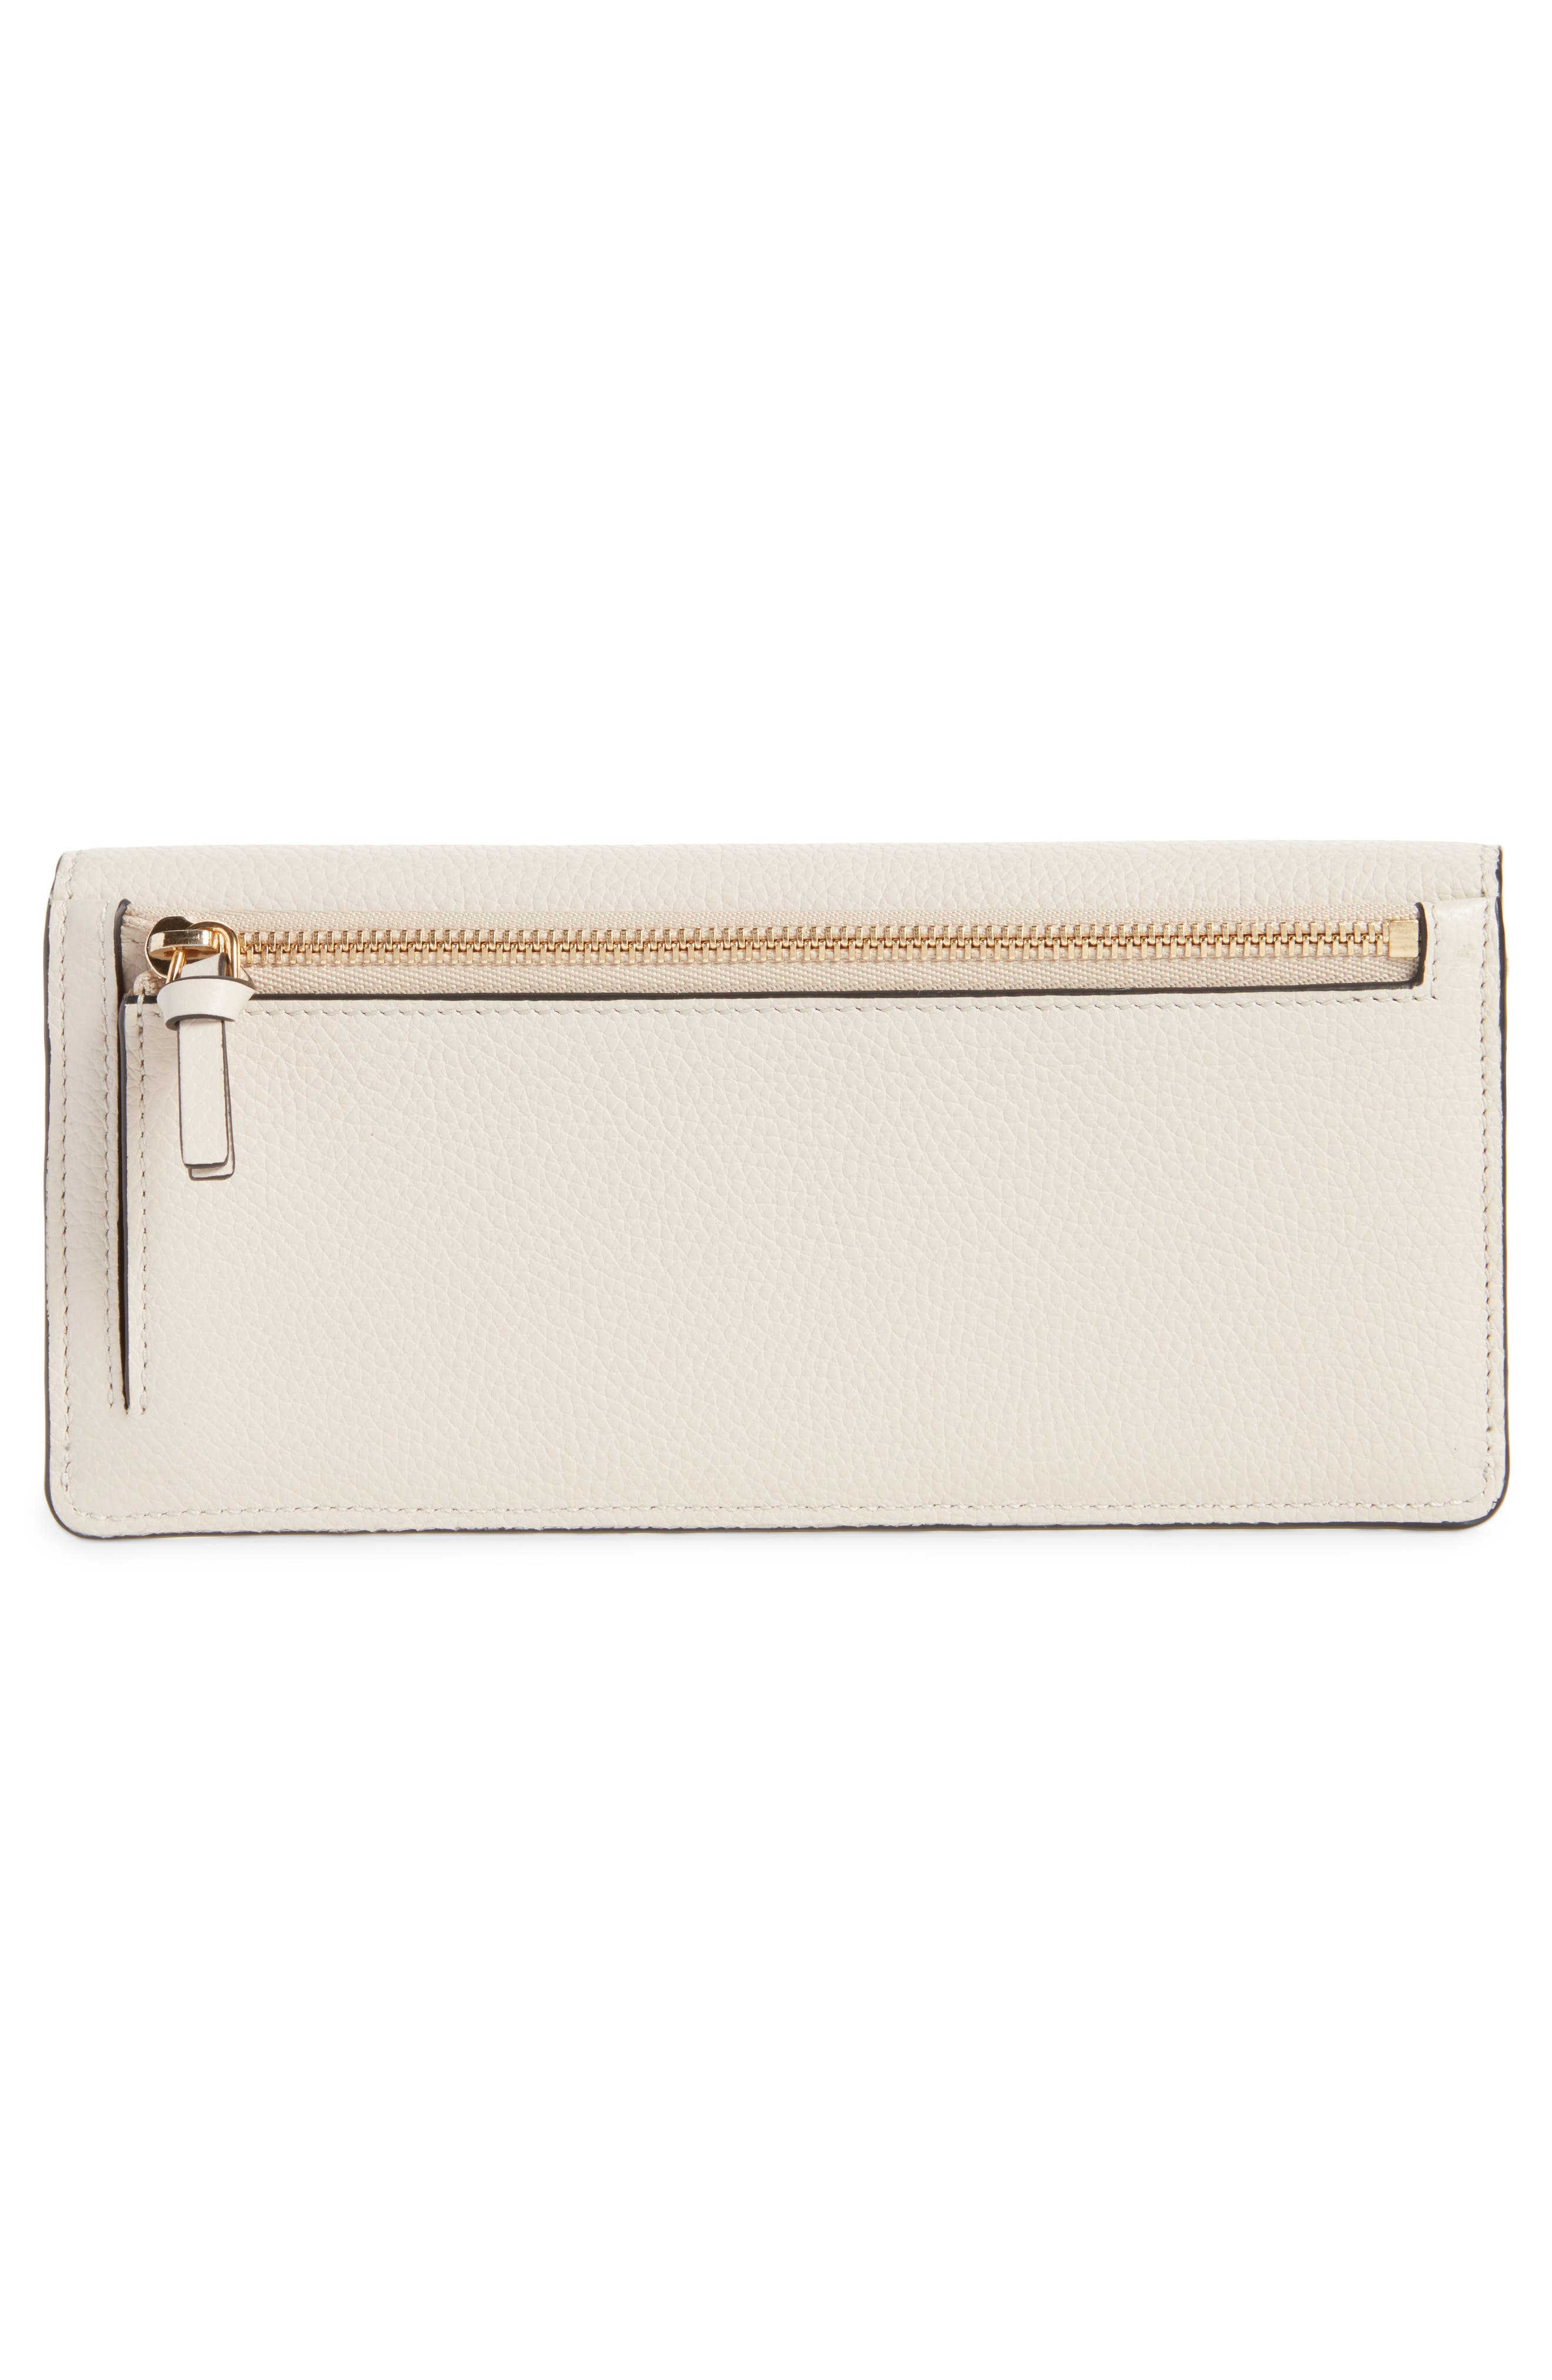 Georgia Continental Leather Wallet,                             Alternate thumbnail 3, color,                             ABSTRACT WHITE